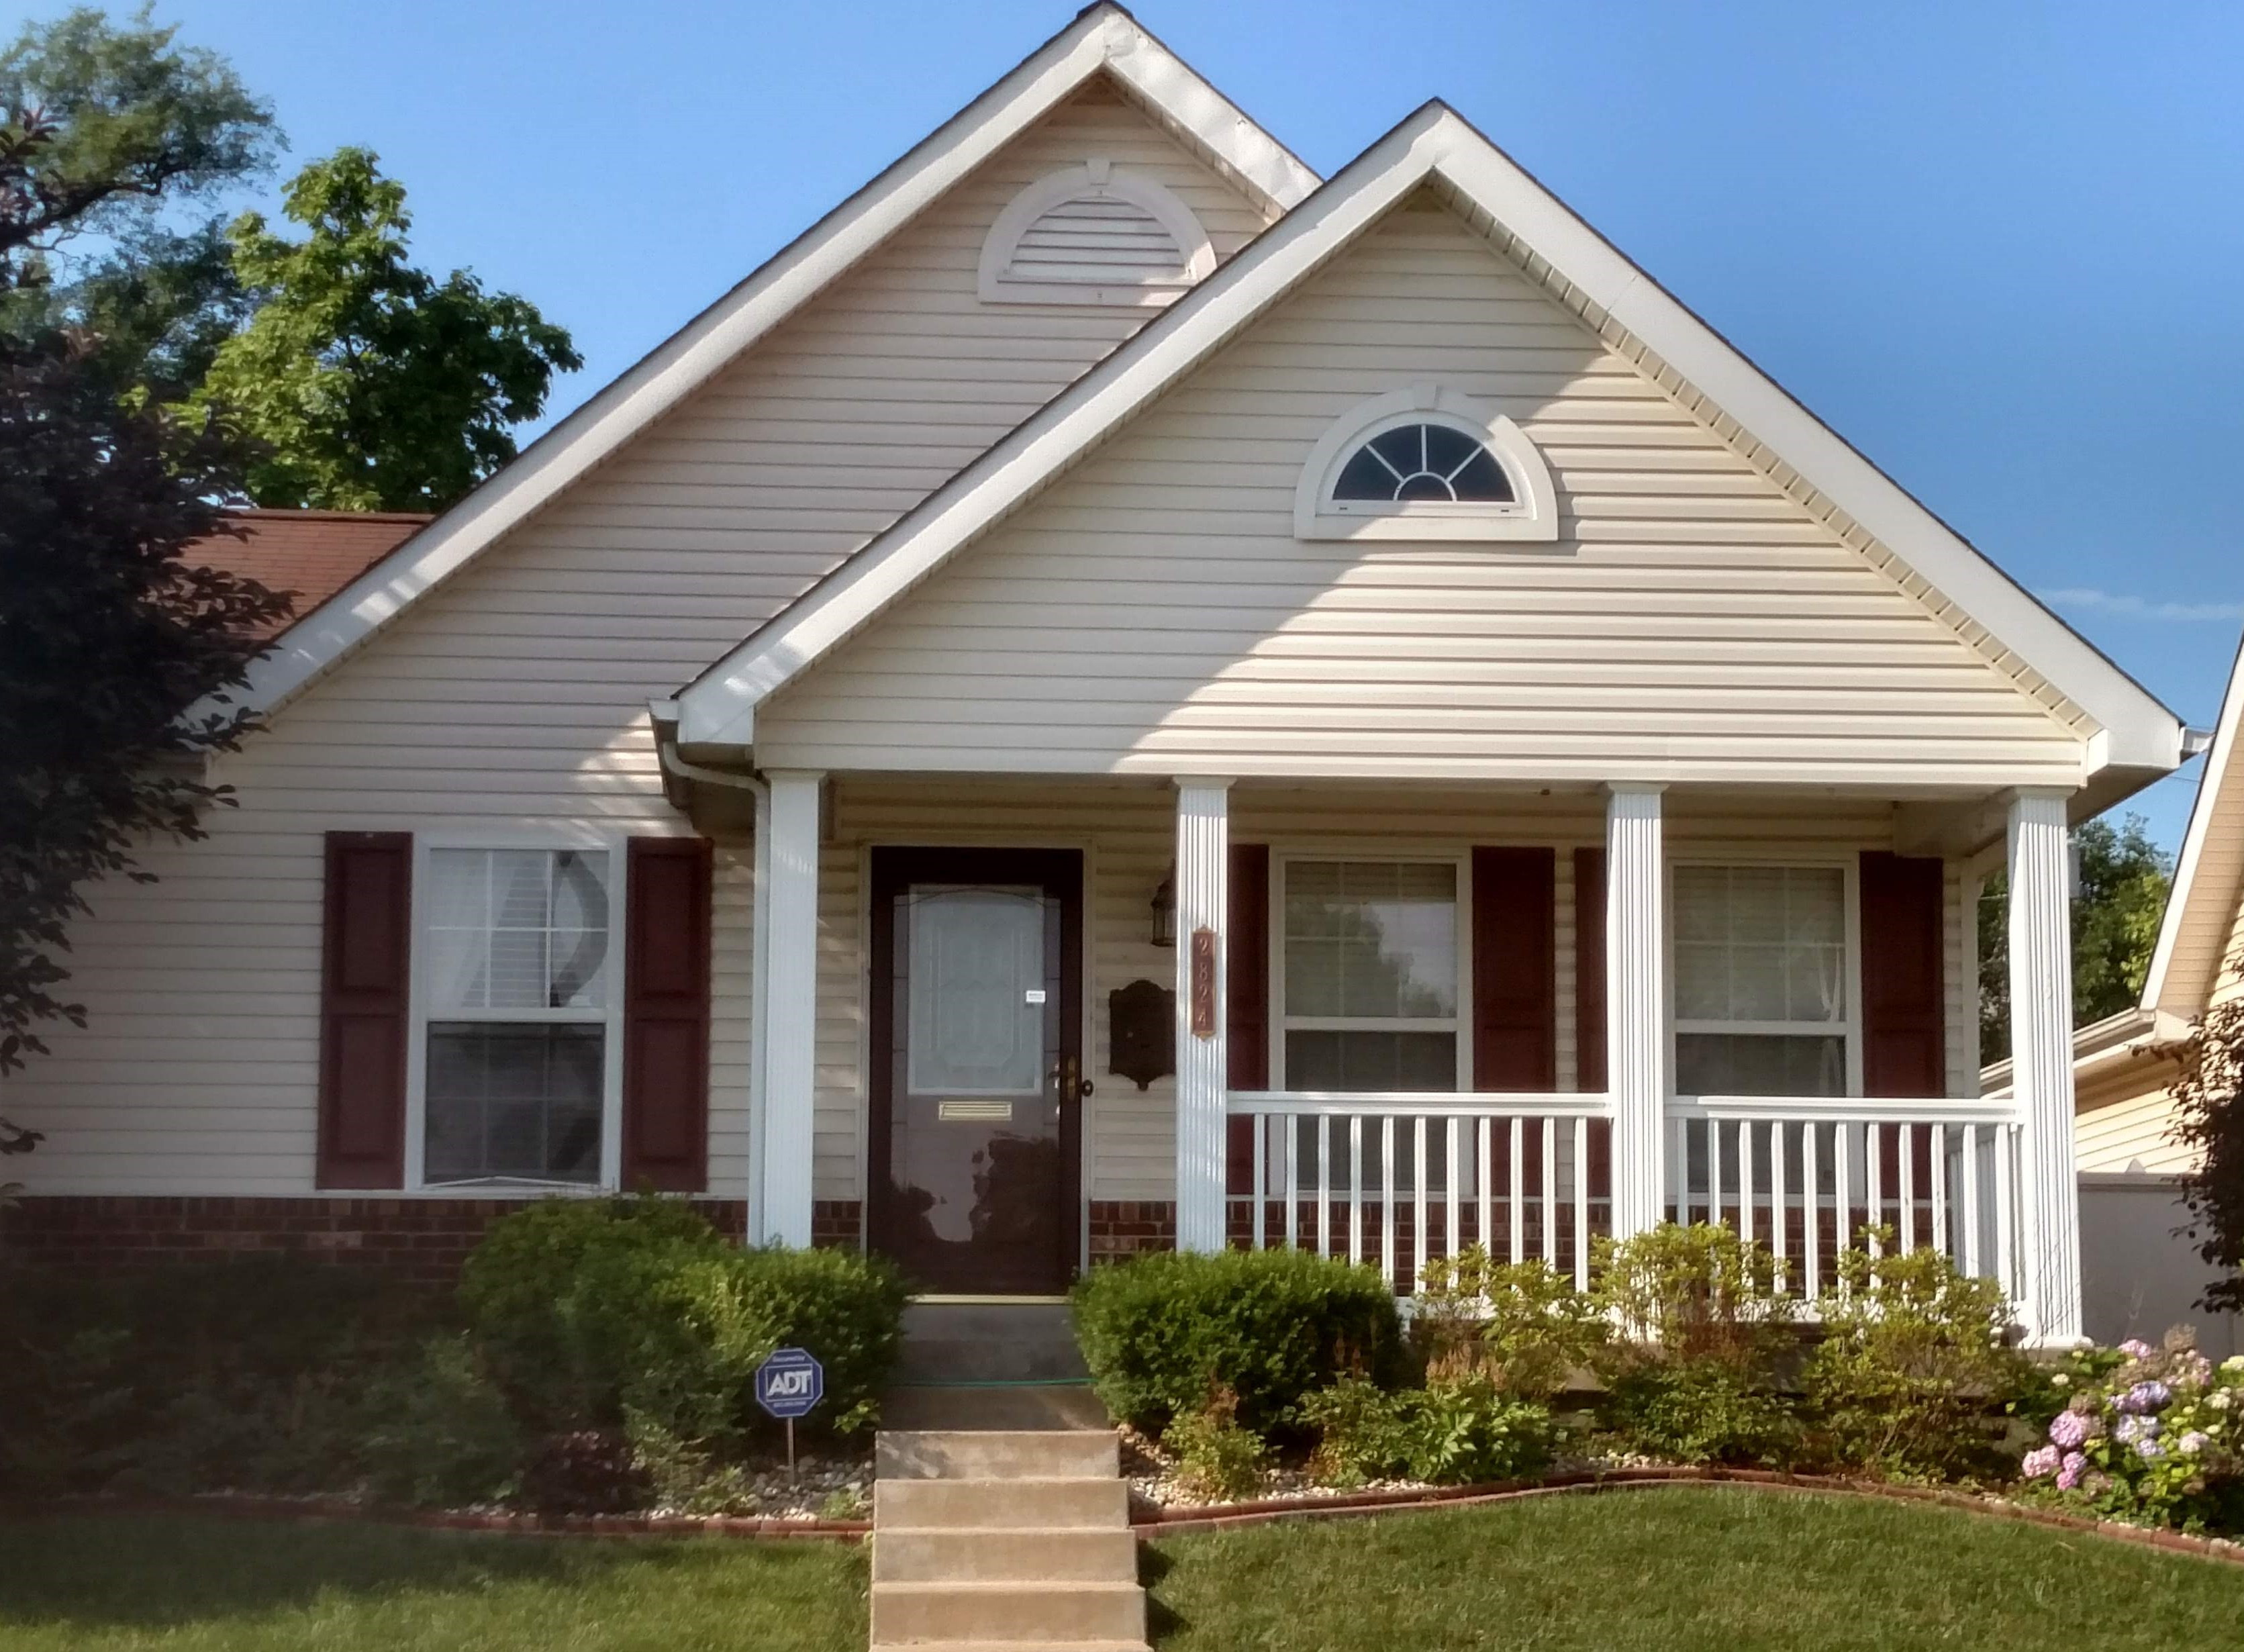 Home Inspection: Up to 1000 sqft